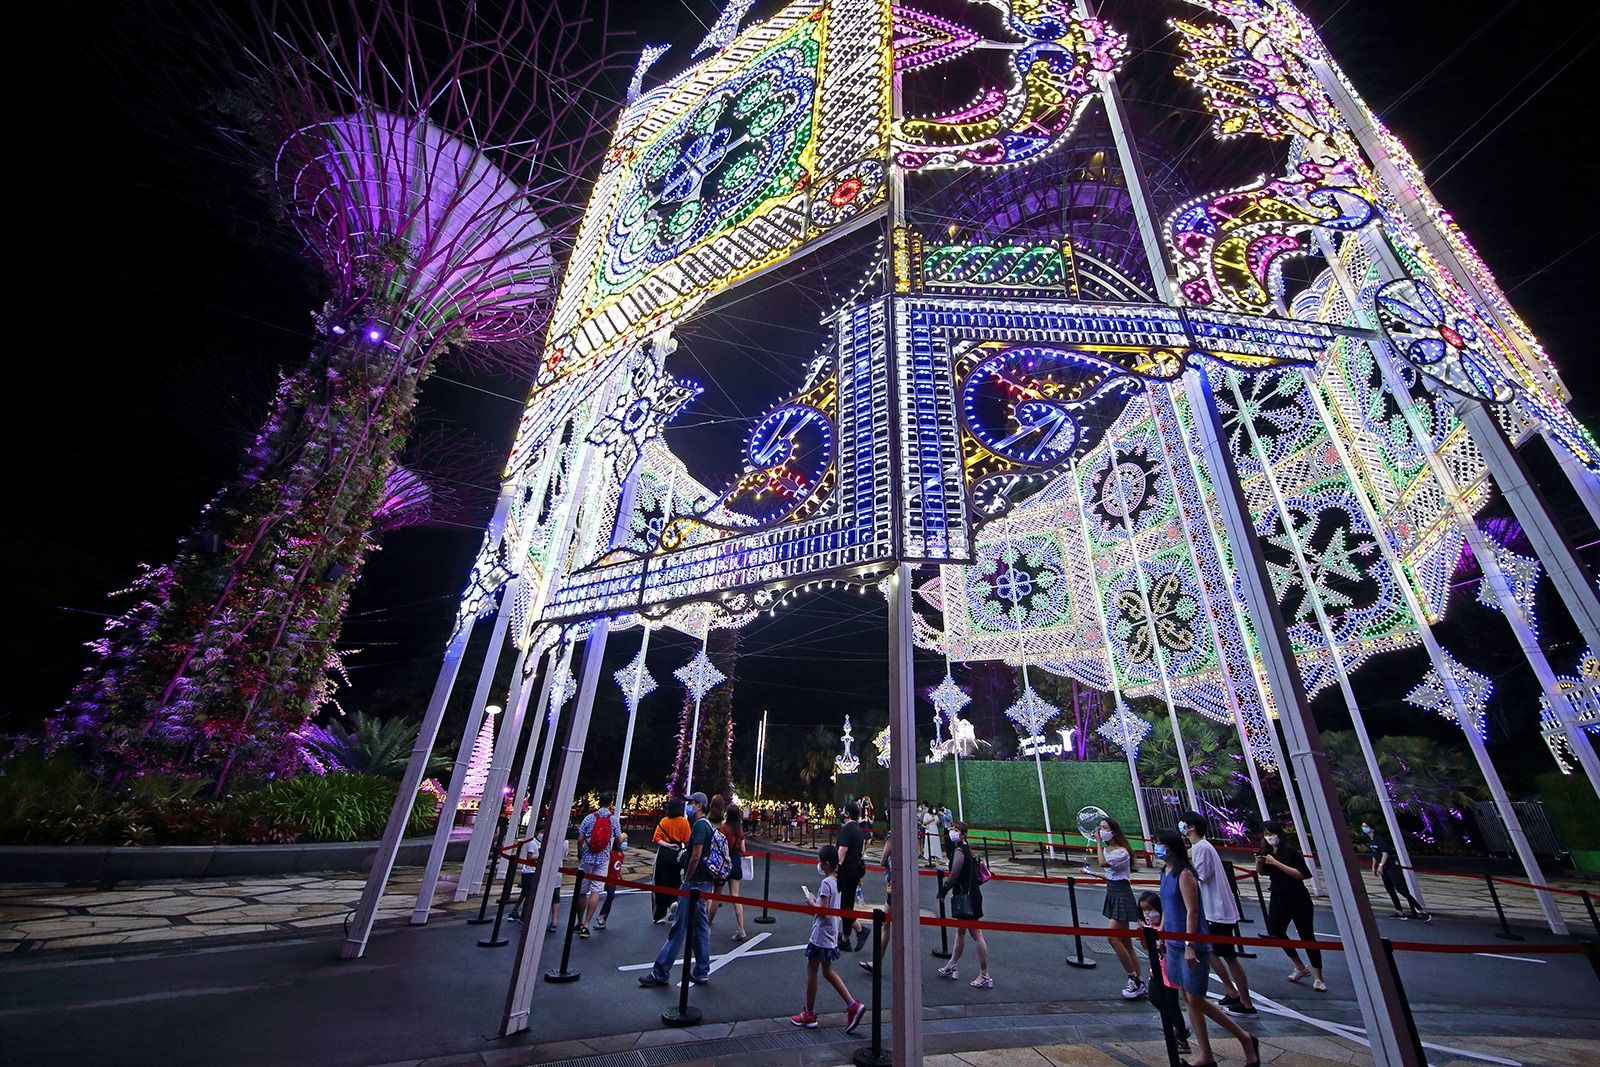 10 Things to Do During the Christmas Holidays in Singapore